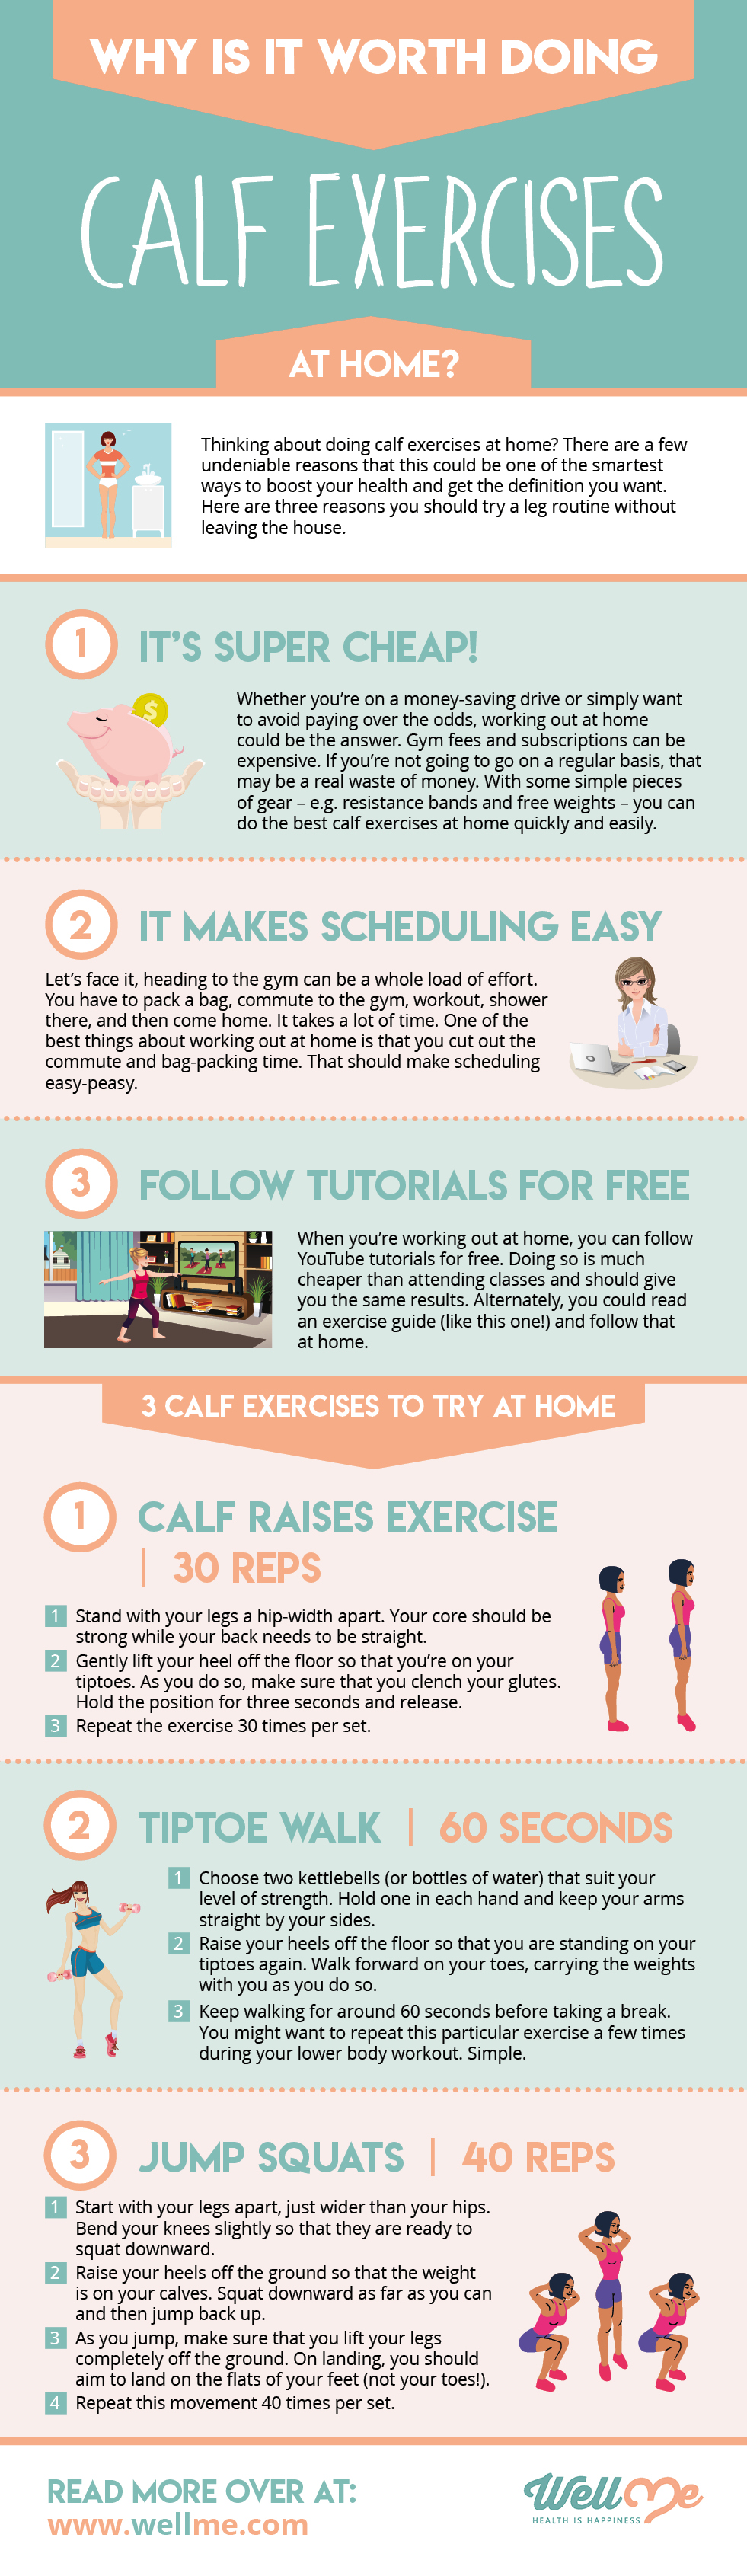 best calf exercises infographic